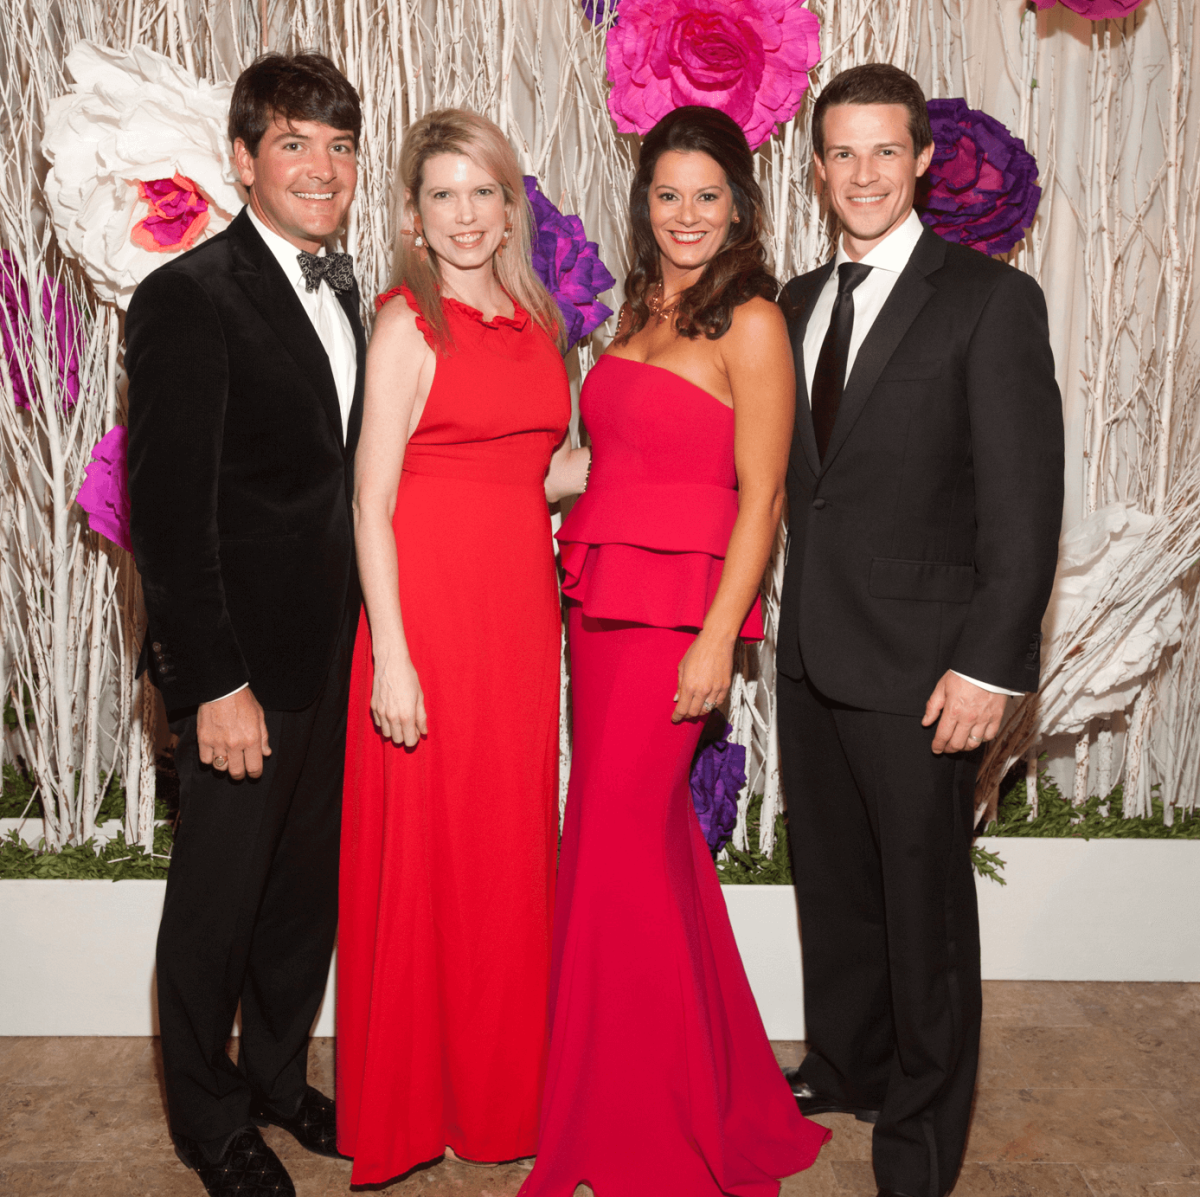 Houston, Childrens Museum of Houston Mad Hatters Ball, Oct. 2016, Bill  Toomey, Courtney Toomey, Katie  Scroggins, Keith Scroggins